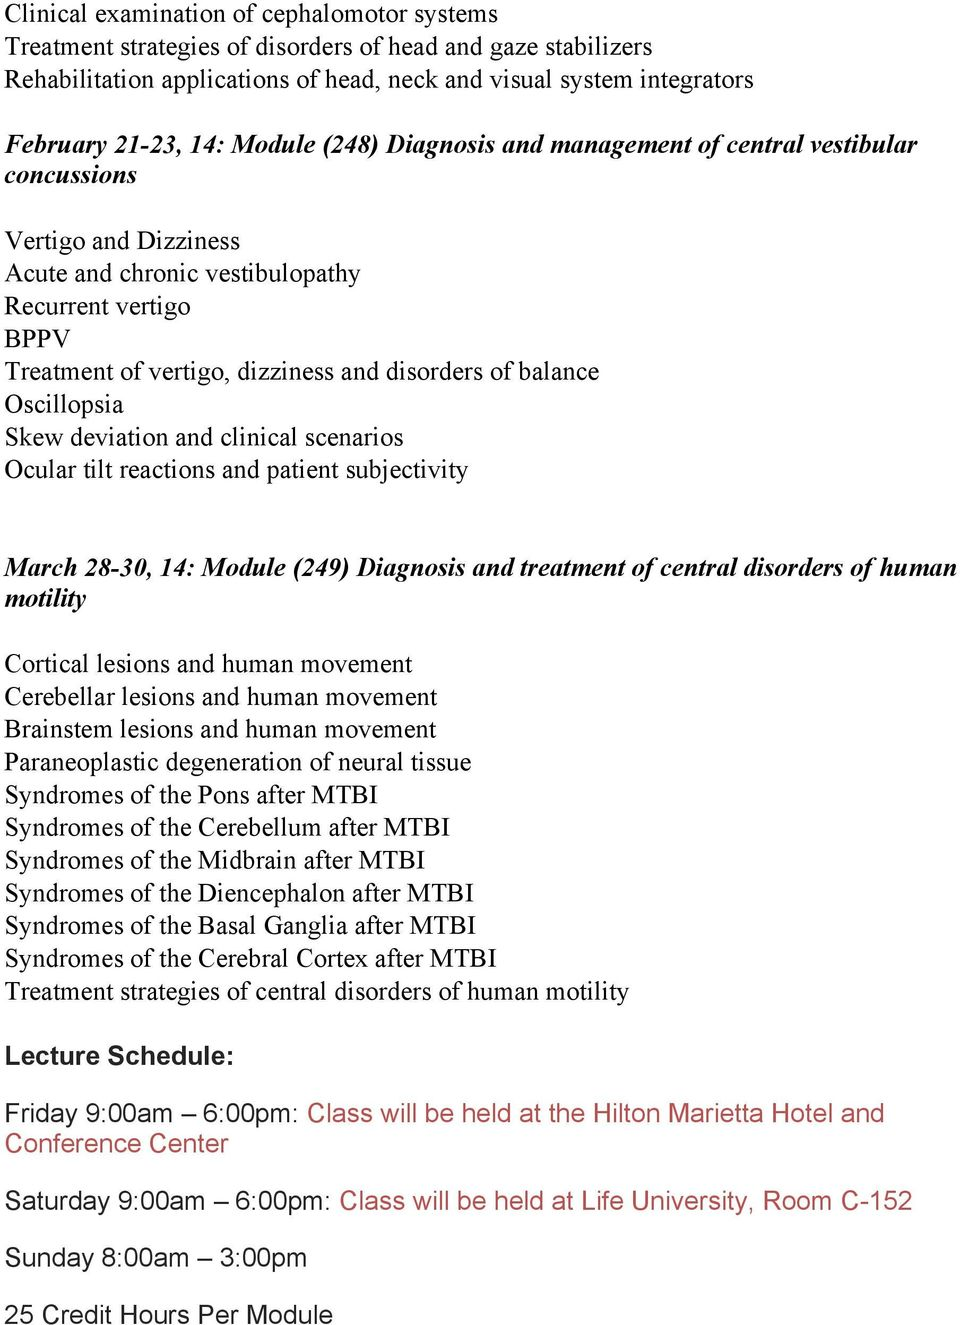 balance Oscillopsia Skew deviation and clinical scenarios Ocular tilt reactions and patient subjectivity March 28-30, 14: Module (249) Diagnosis and treatment of central disorders of human motility